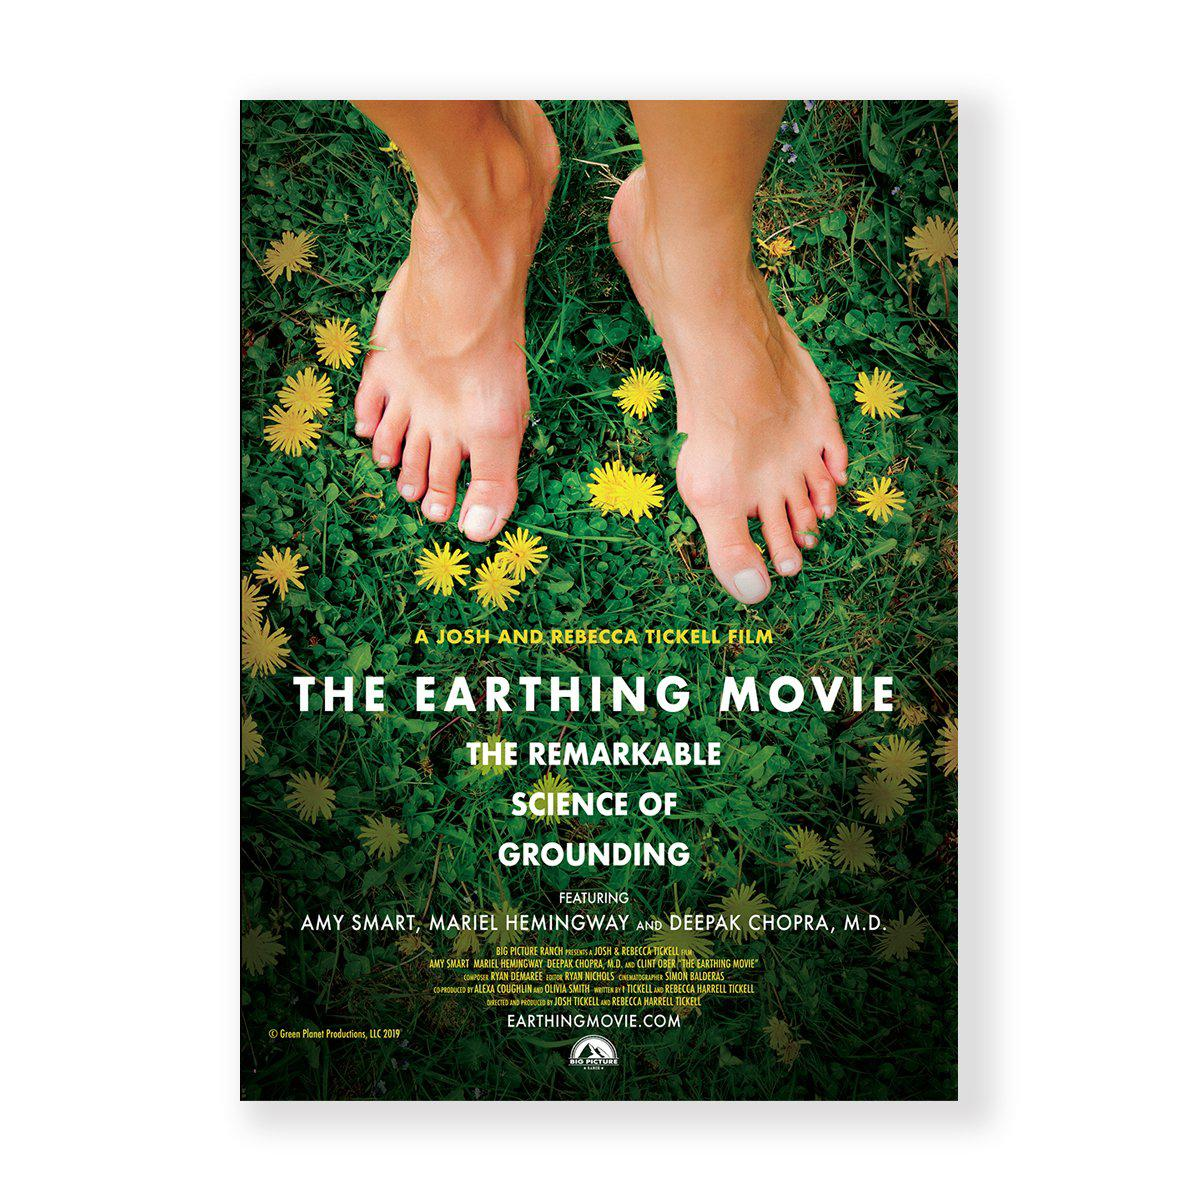 The Earthing Movie